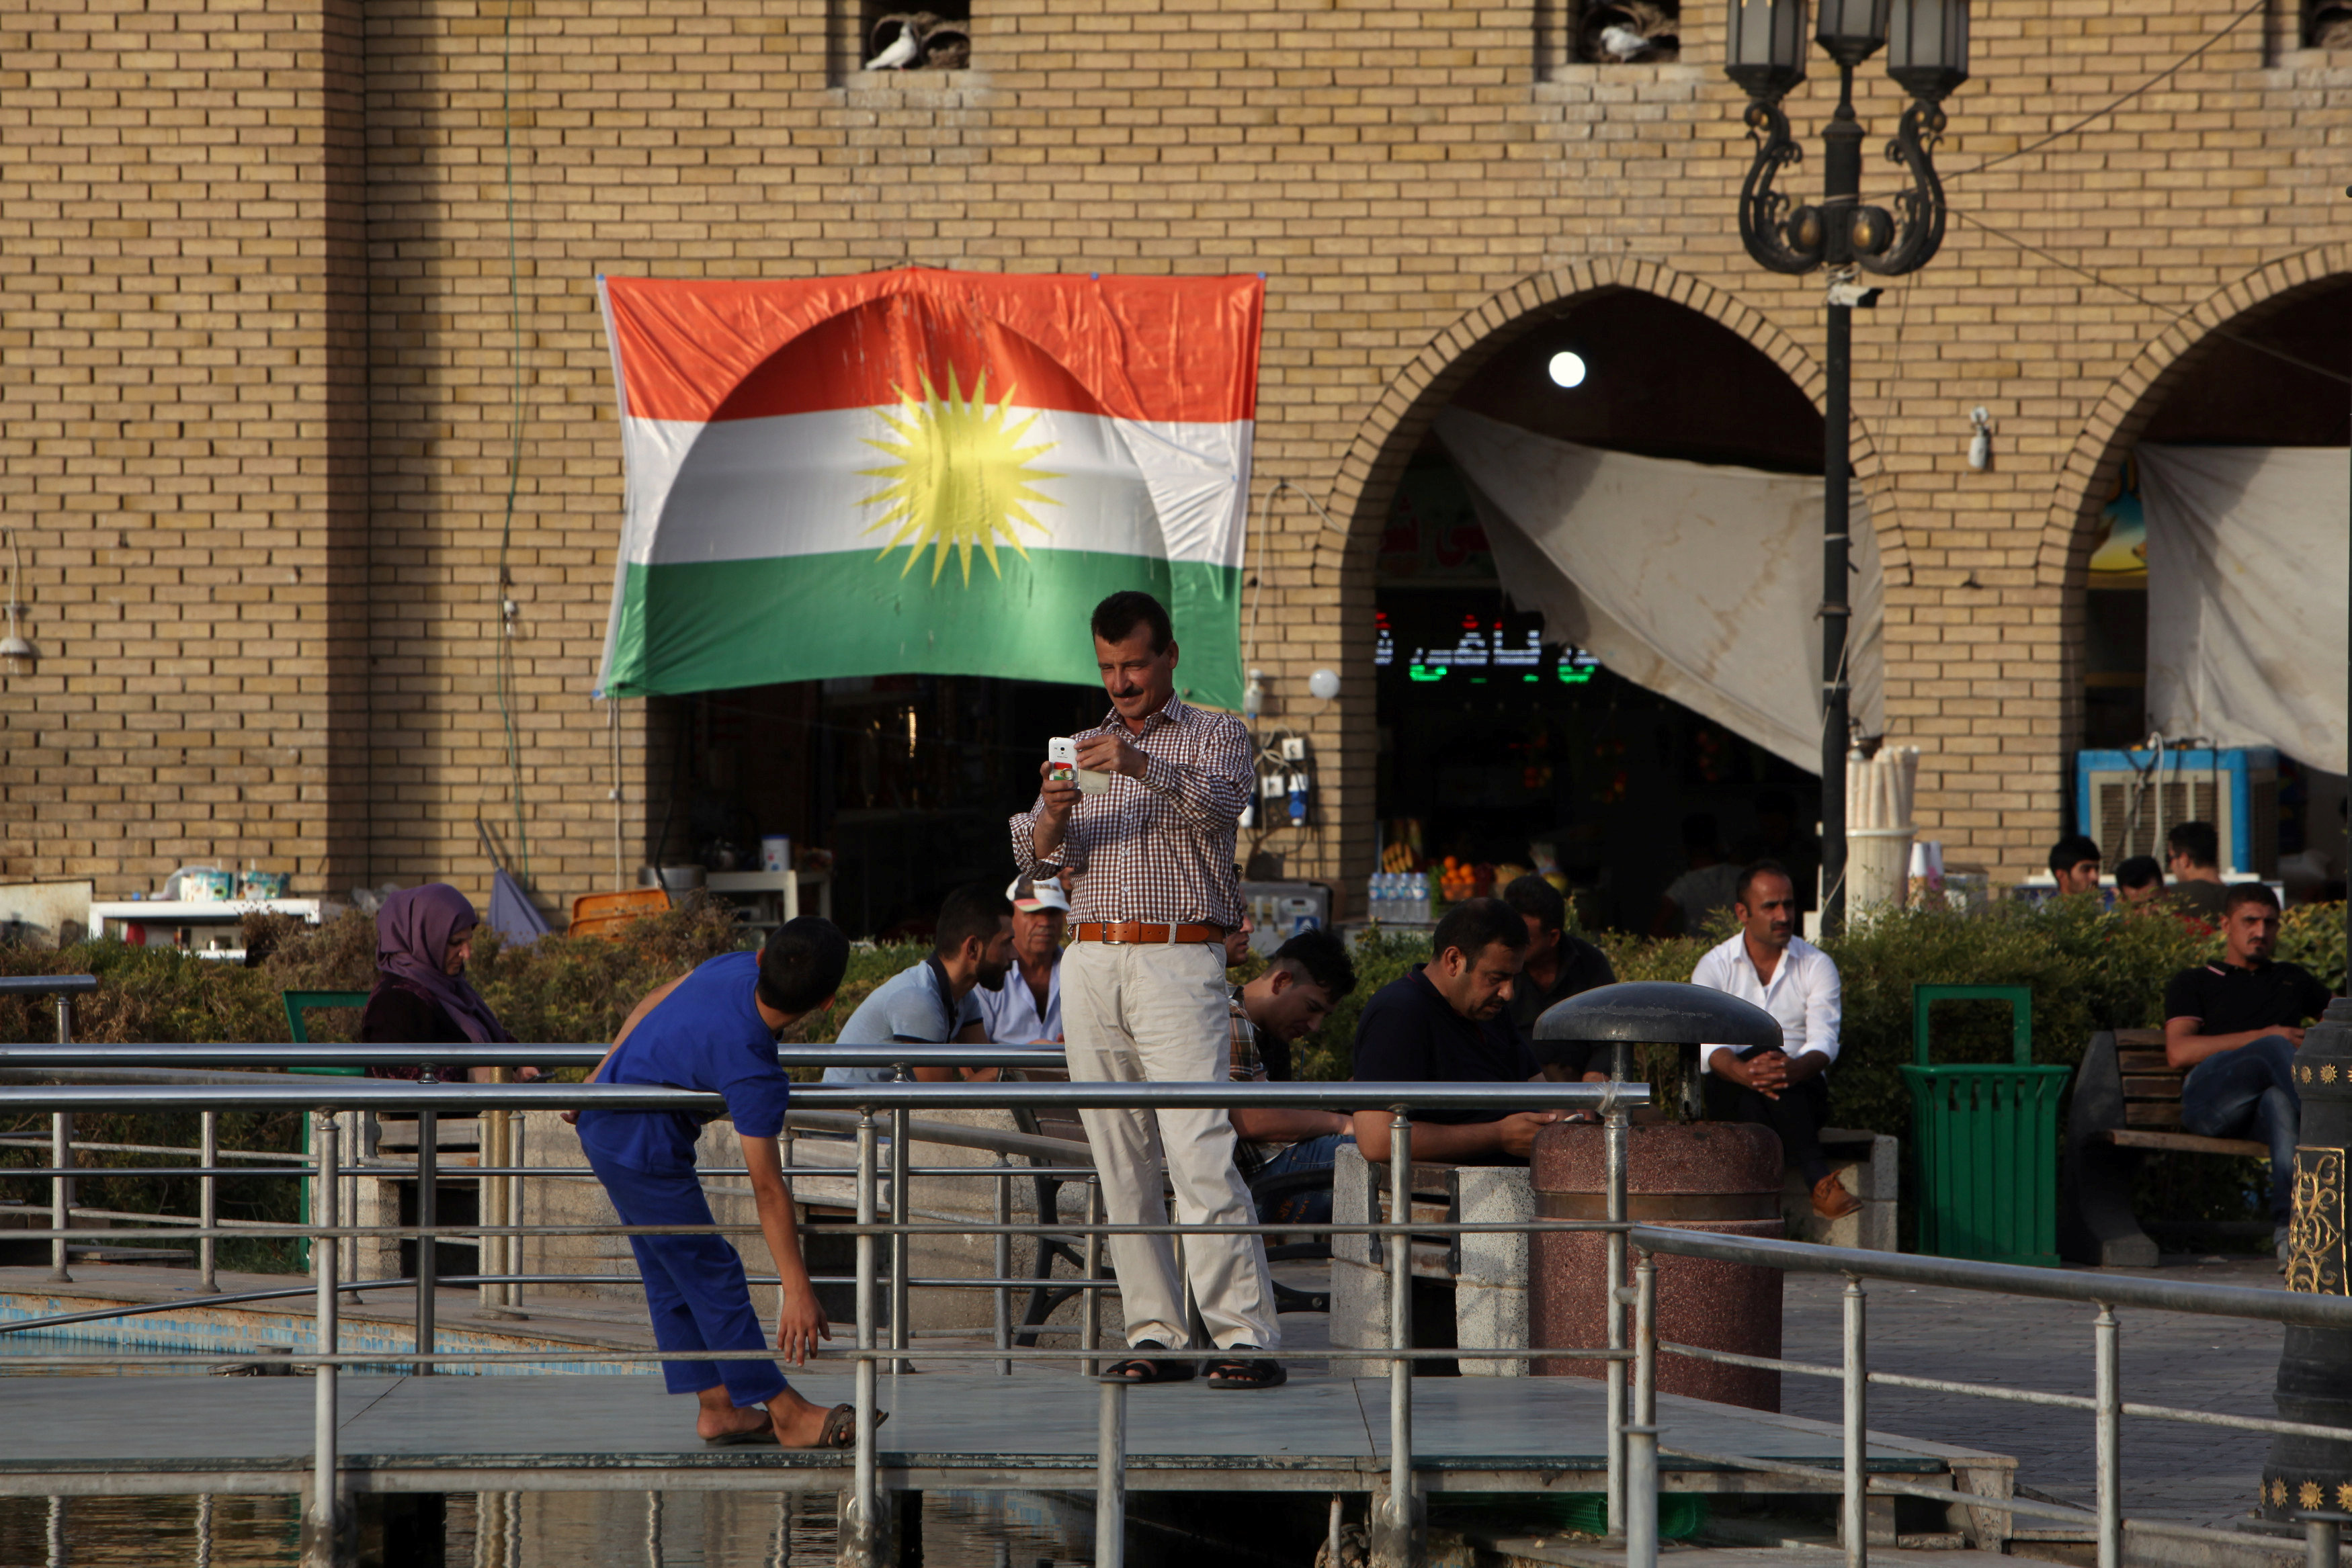 Iraq's Kurds might put off independence vote in return for concessions from Baghdad